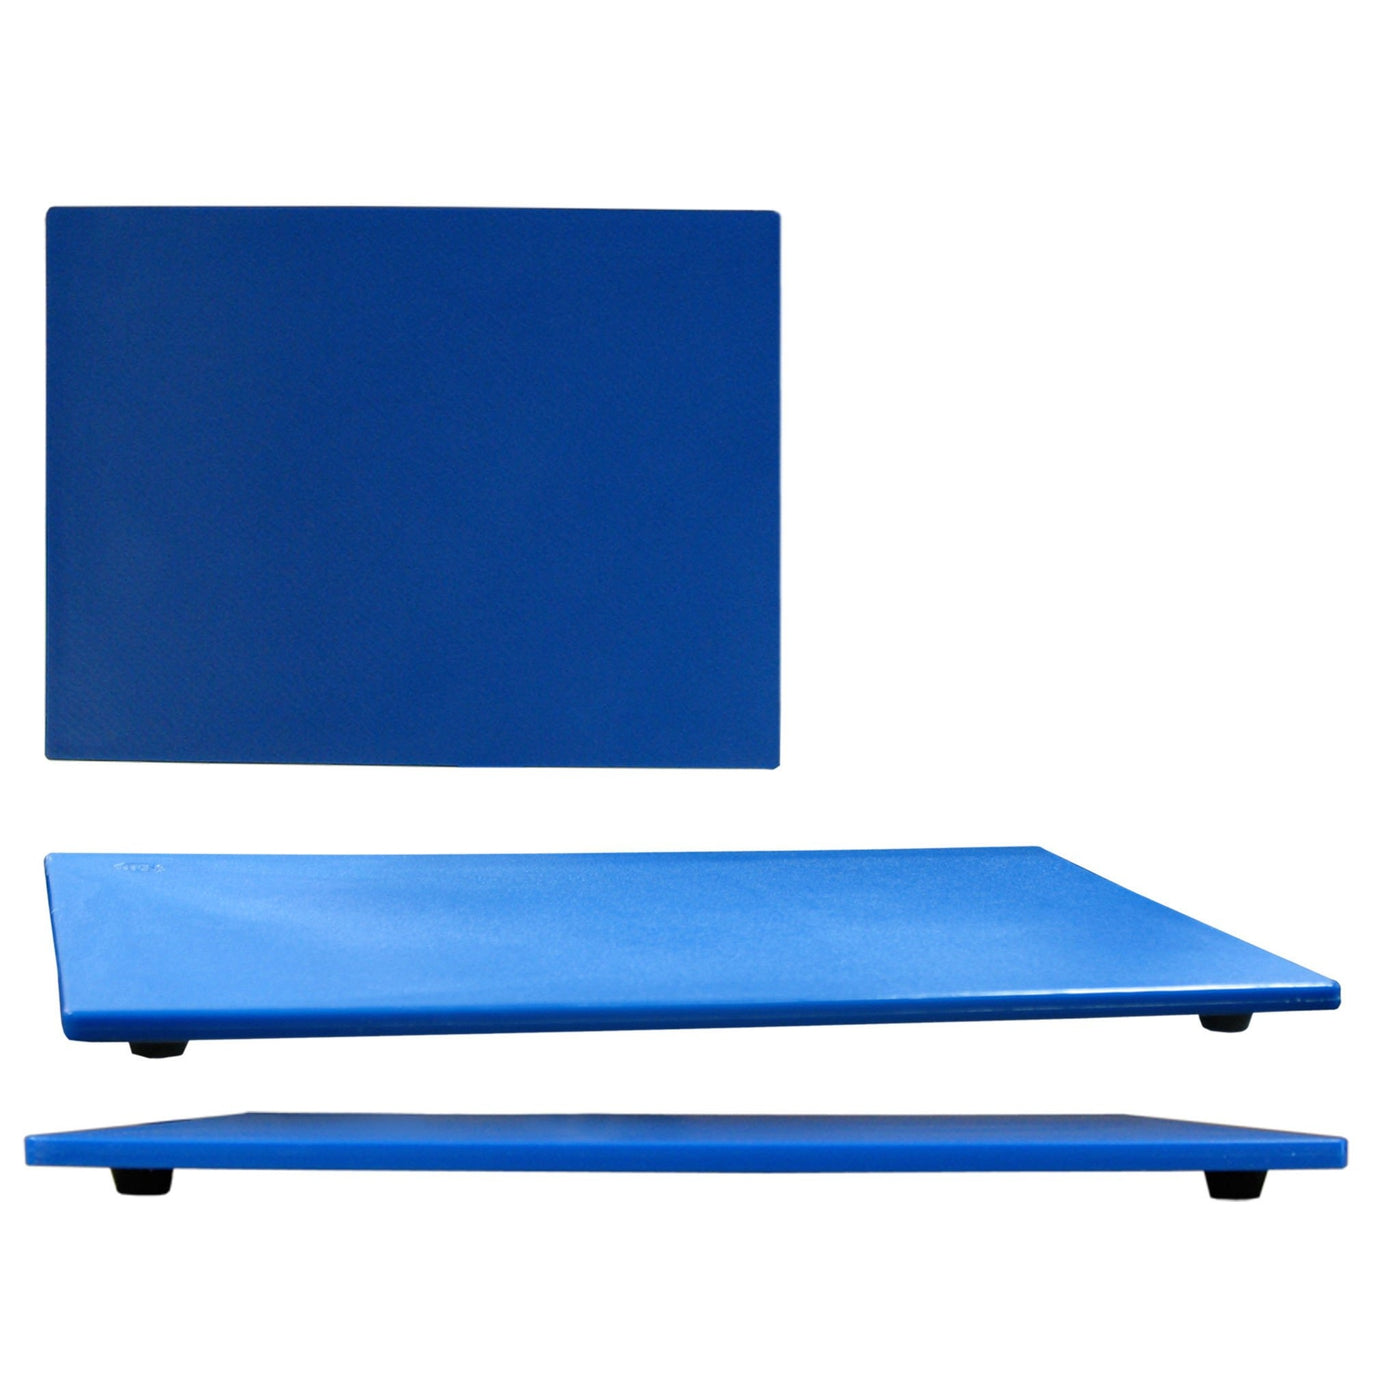 Photo Blue Dissecting Board-Laboratory Accessory-Mortech Manufacturing Company Inc. Quality Stainless Steel Autopsy, Morgue, Funeral Home, Necropsy, Veterinary / Anatomy, Dissection Equipment and Accessories